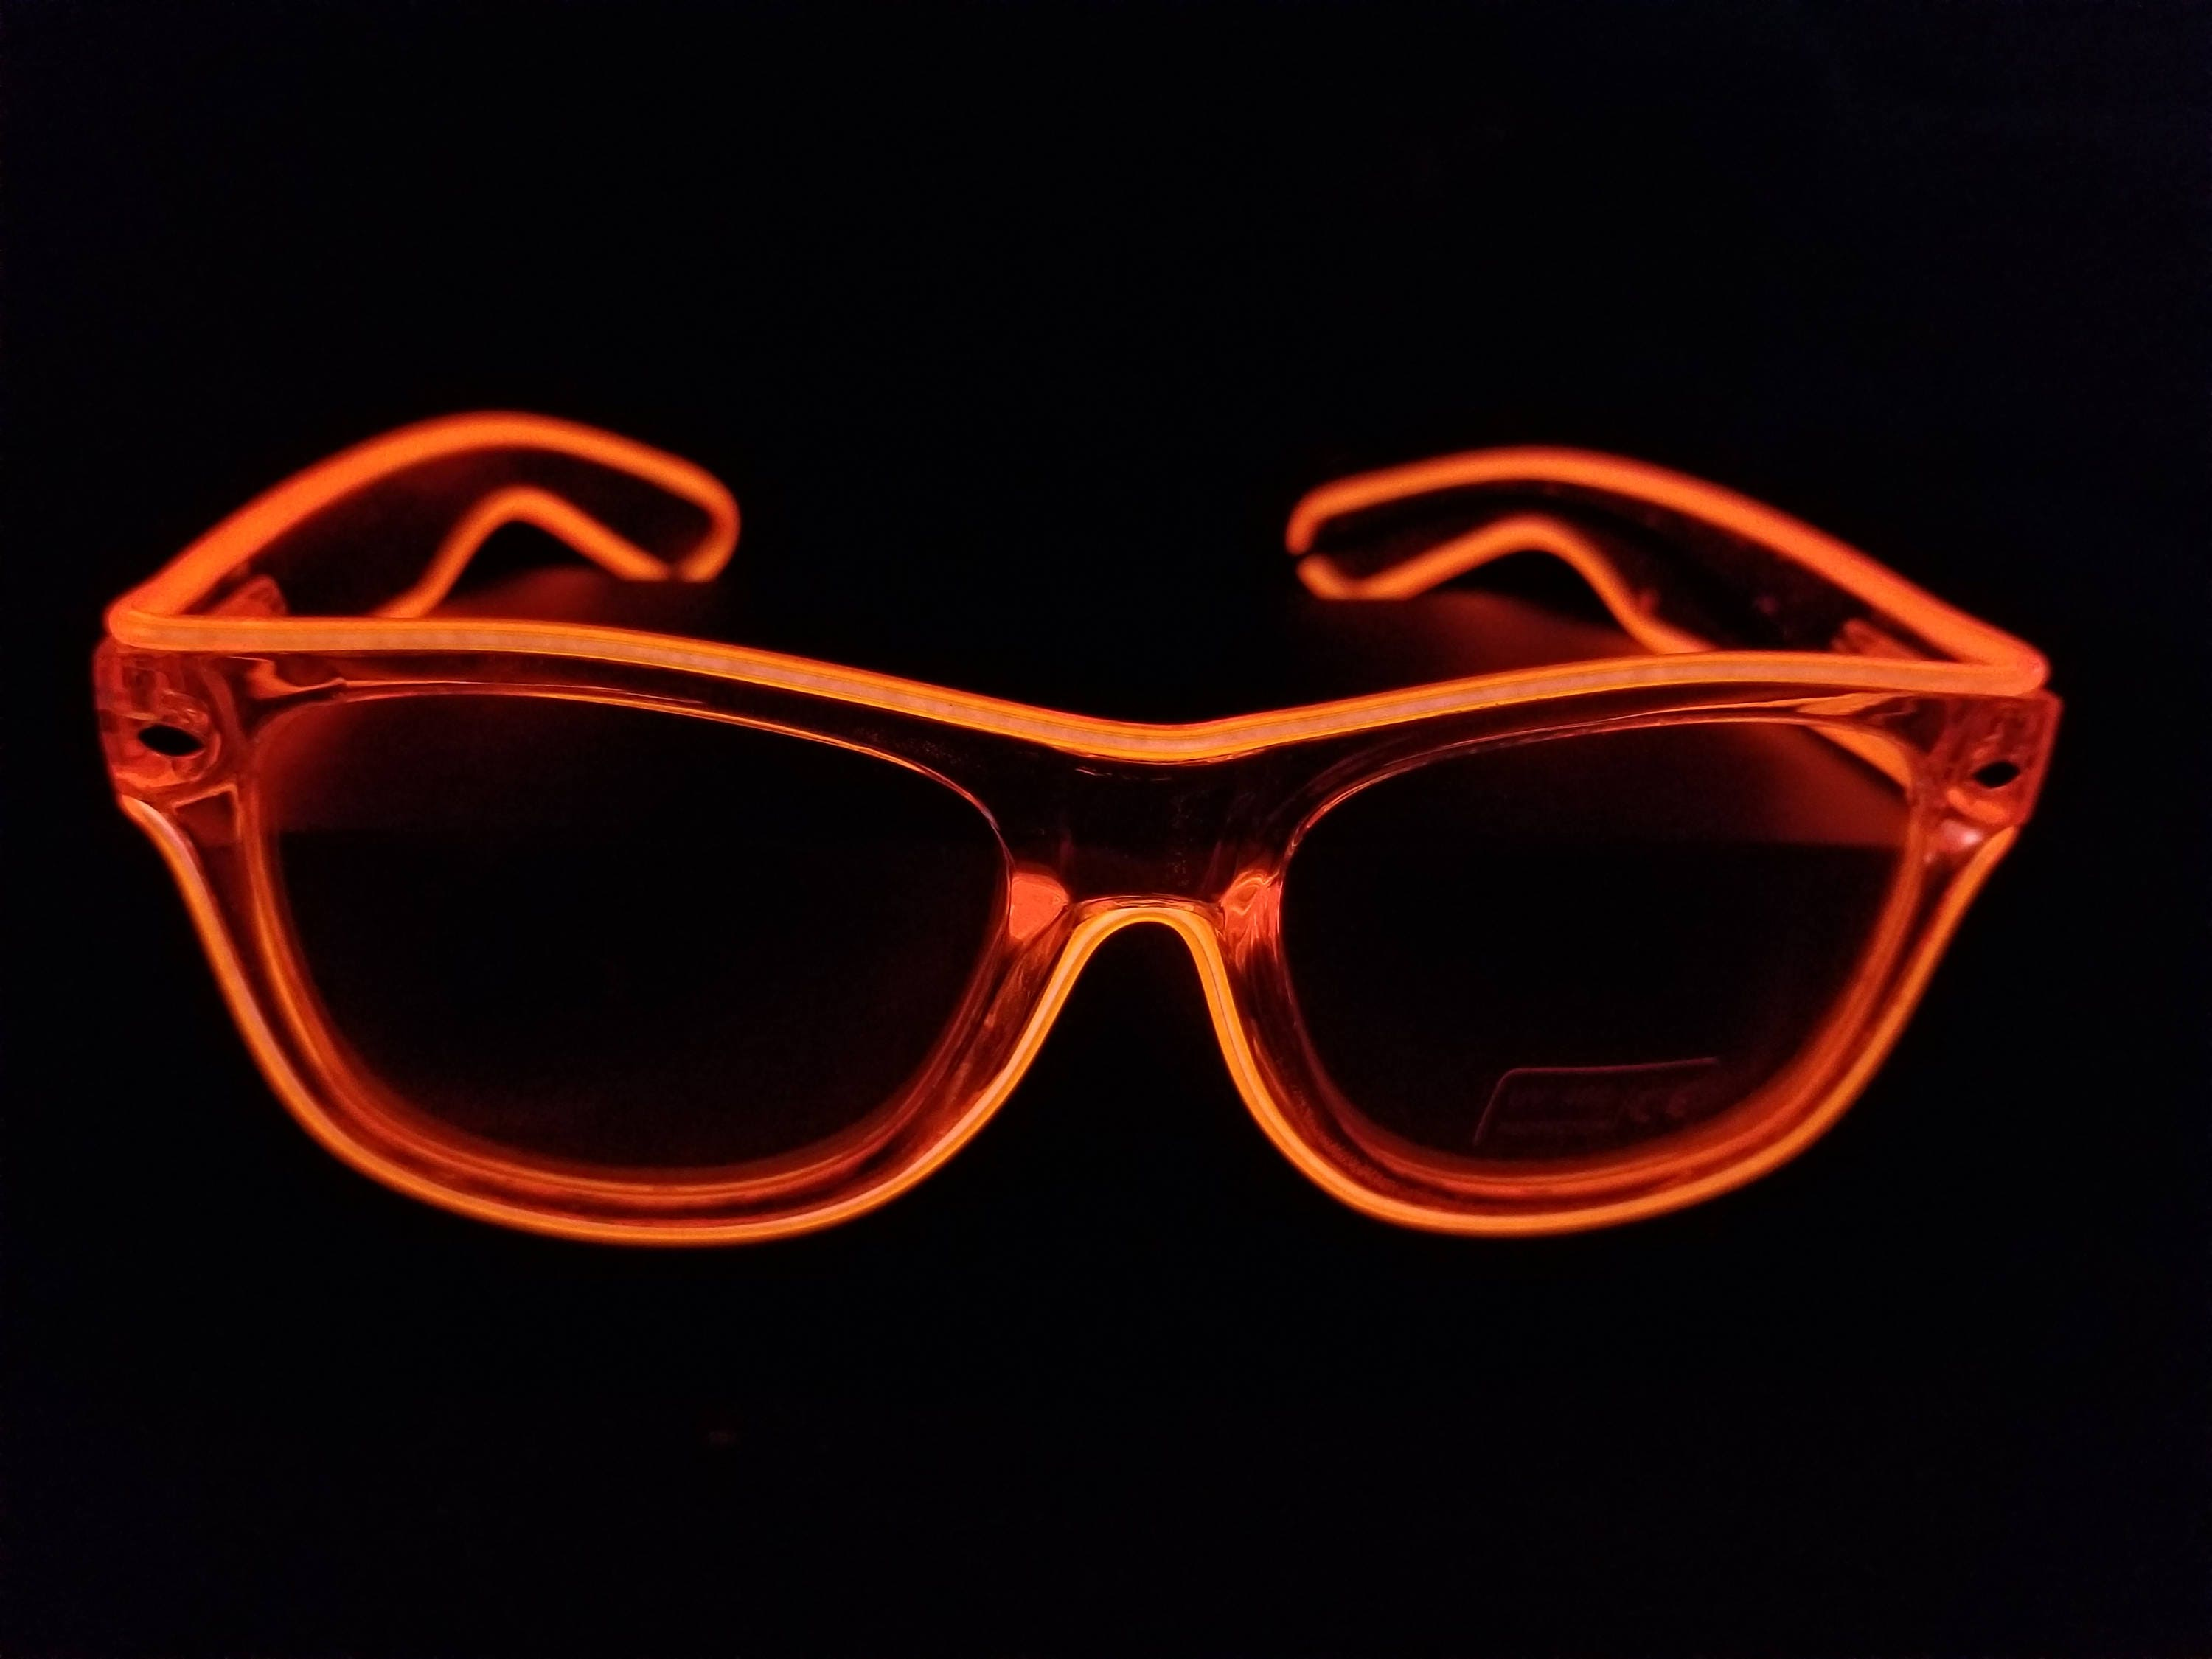 Rayban style CLEAR Light-Up Glasses,EL Wire,Neon,Glow,Rave ...